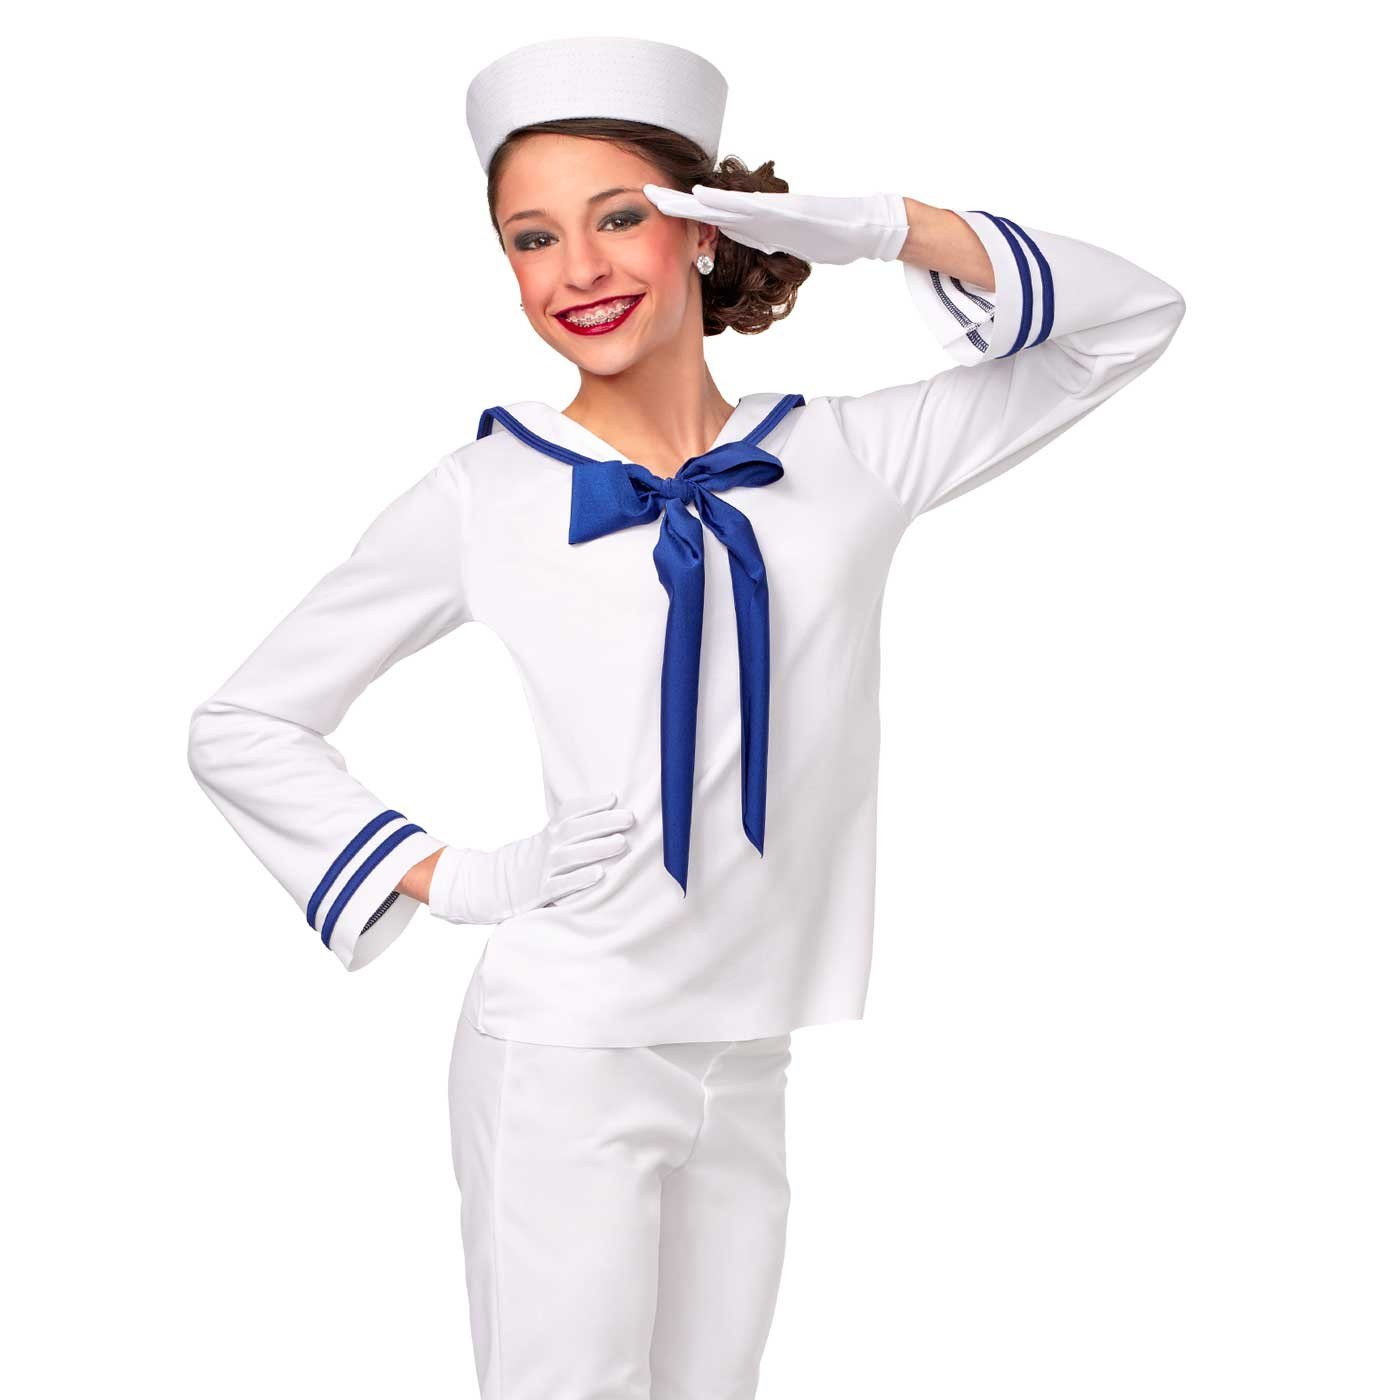 Image result for sailor guy curtain call costumes